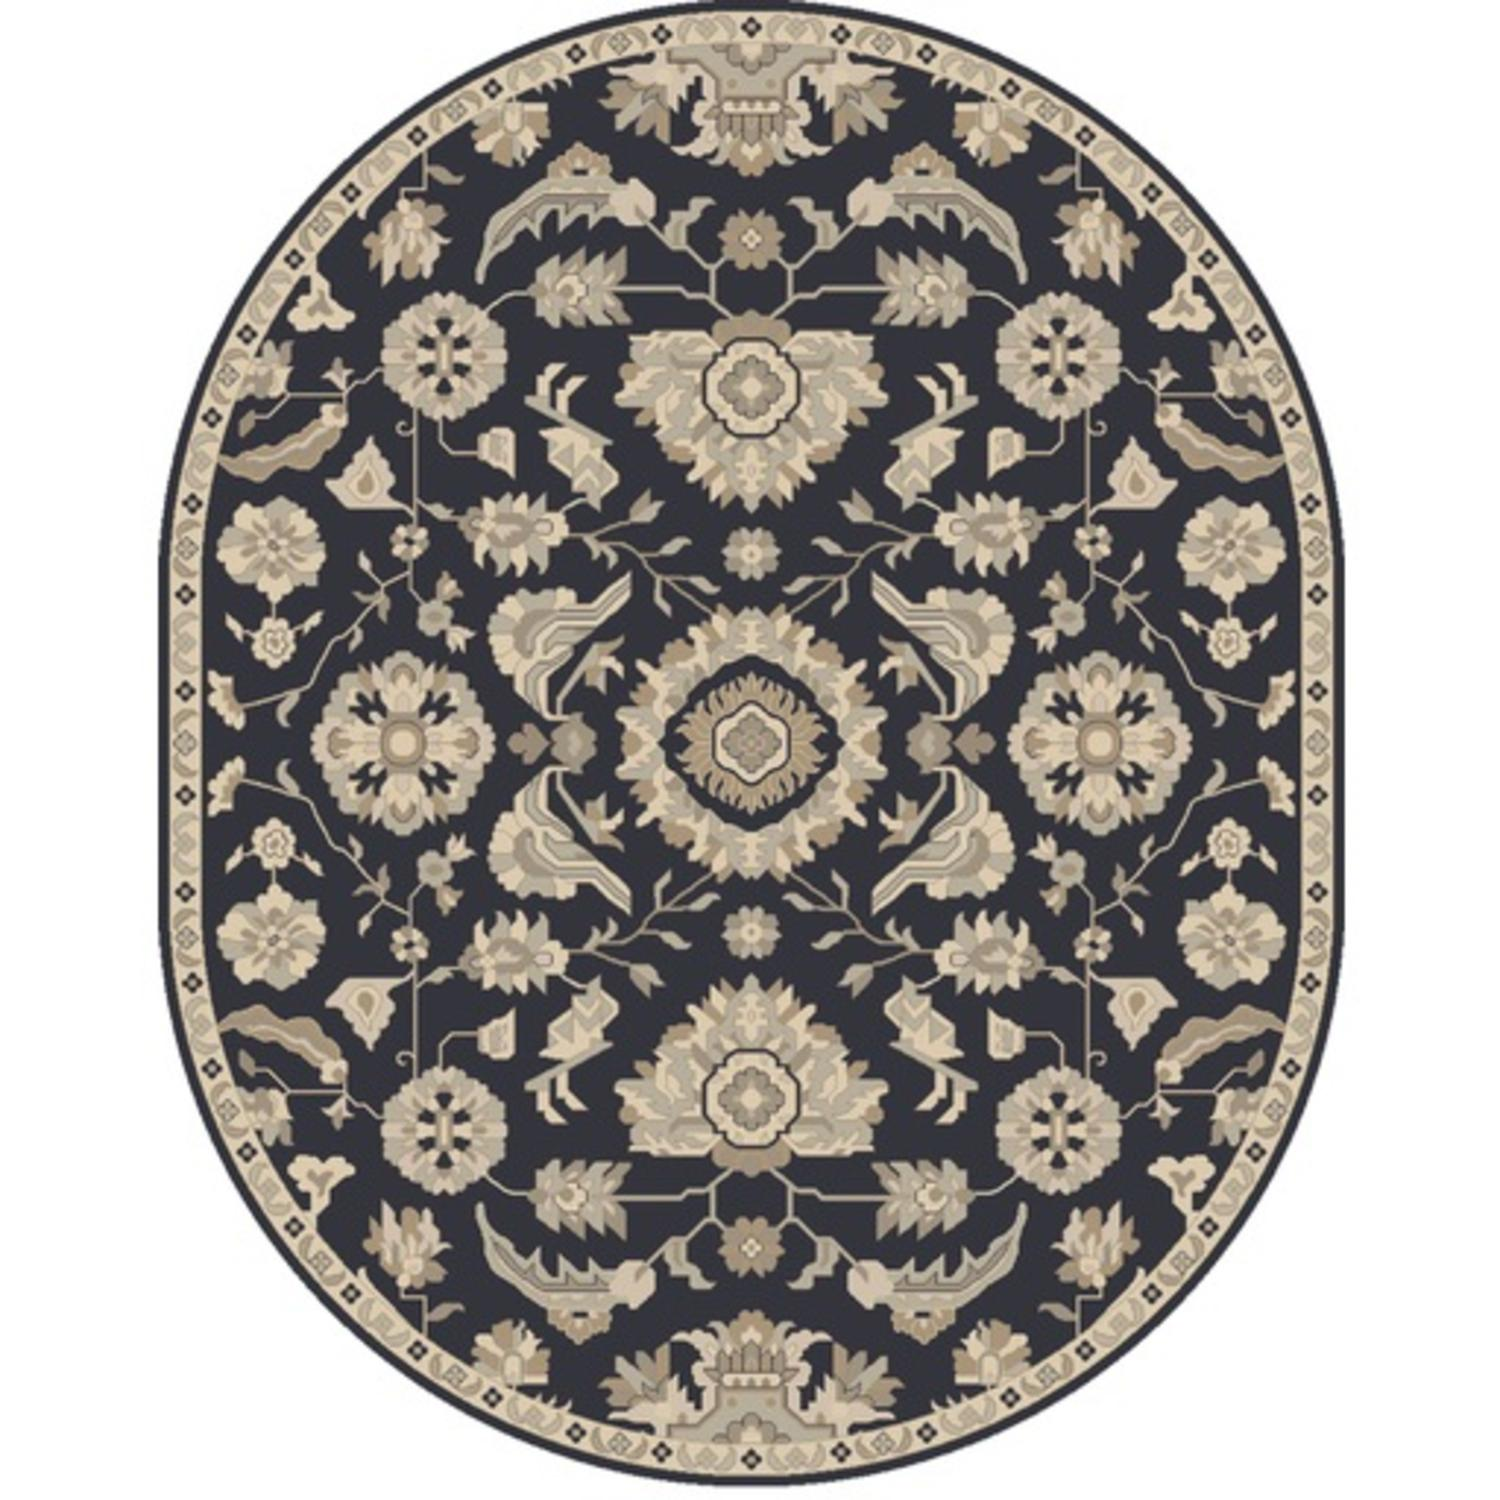 8' x 10' Elegant Leaves Navy Blue and Sandy Beige Oval Wool Area Throw Rug